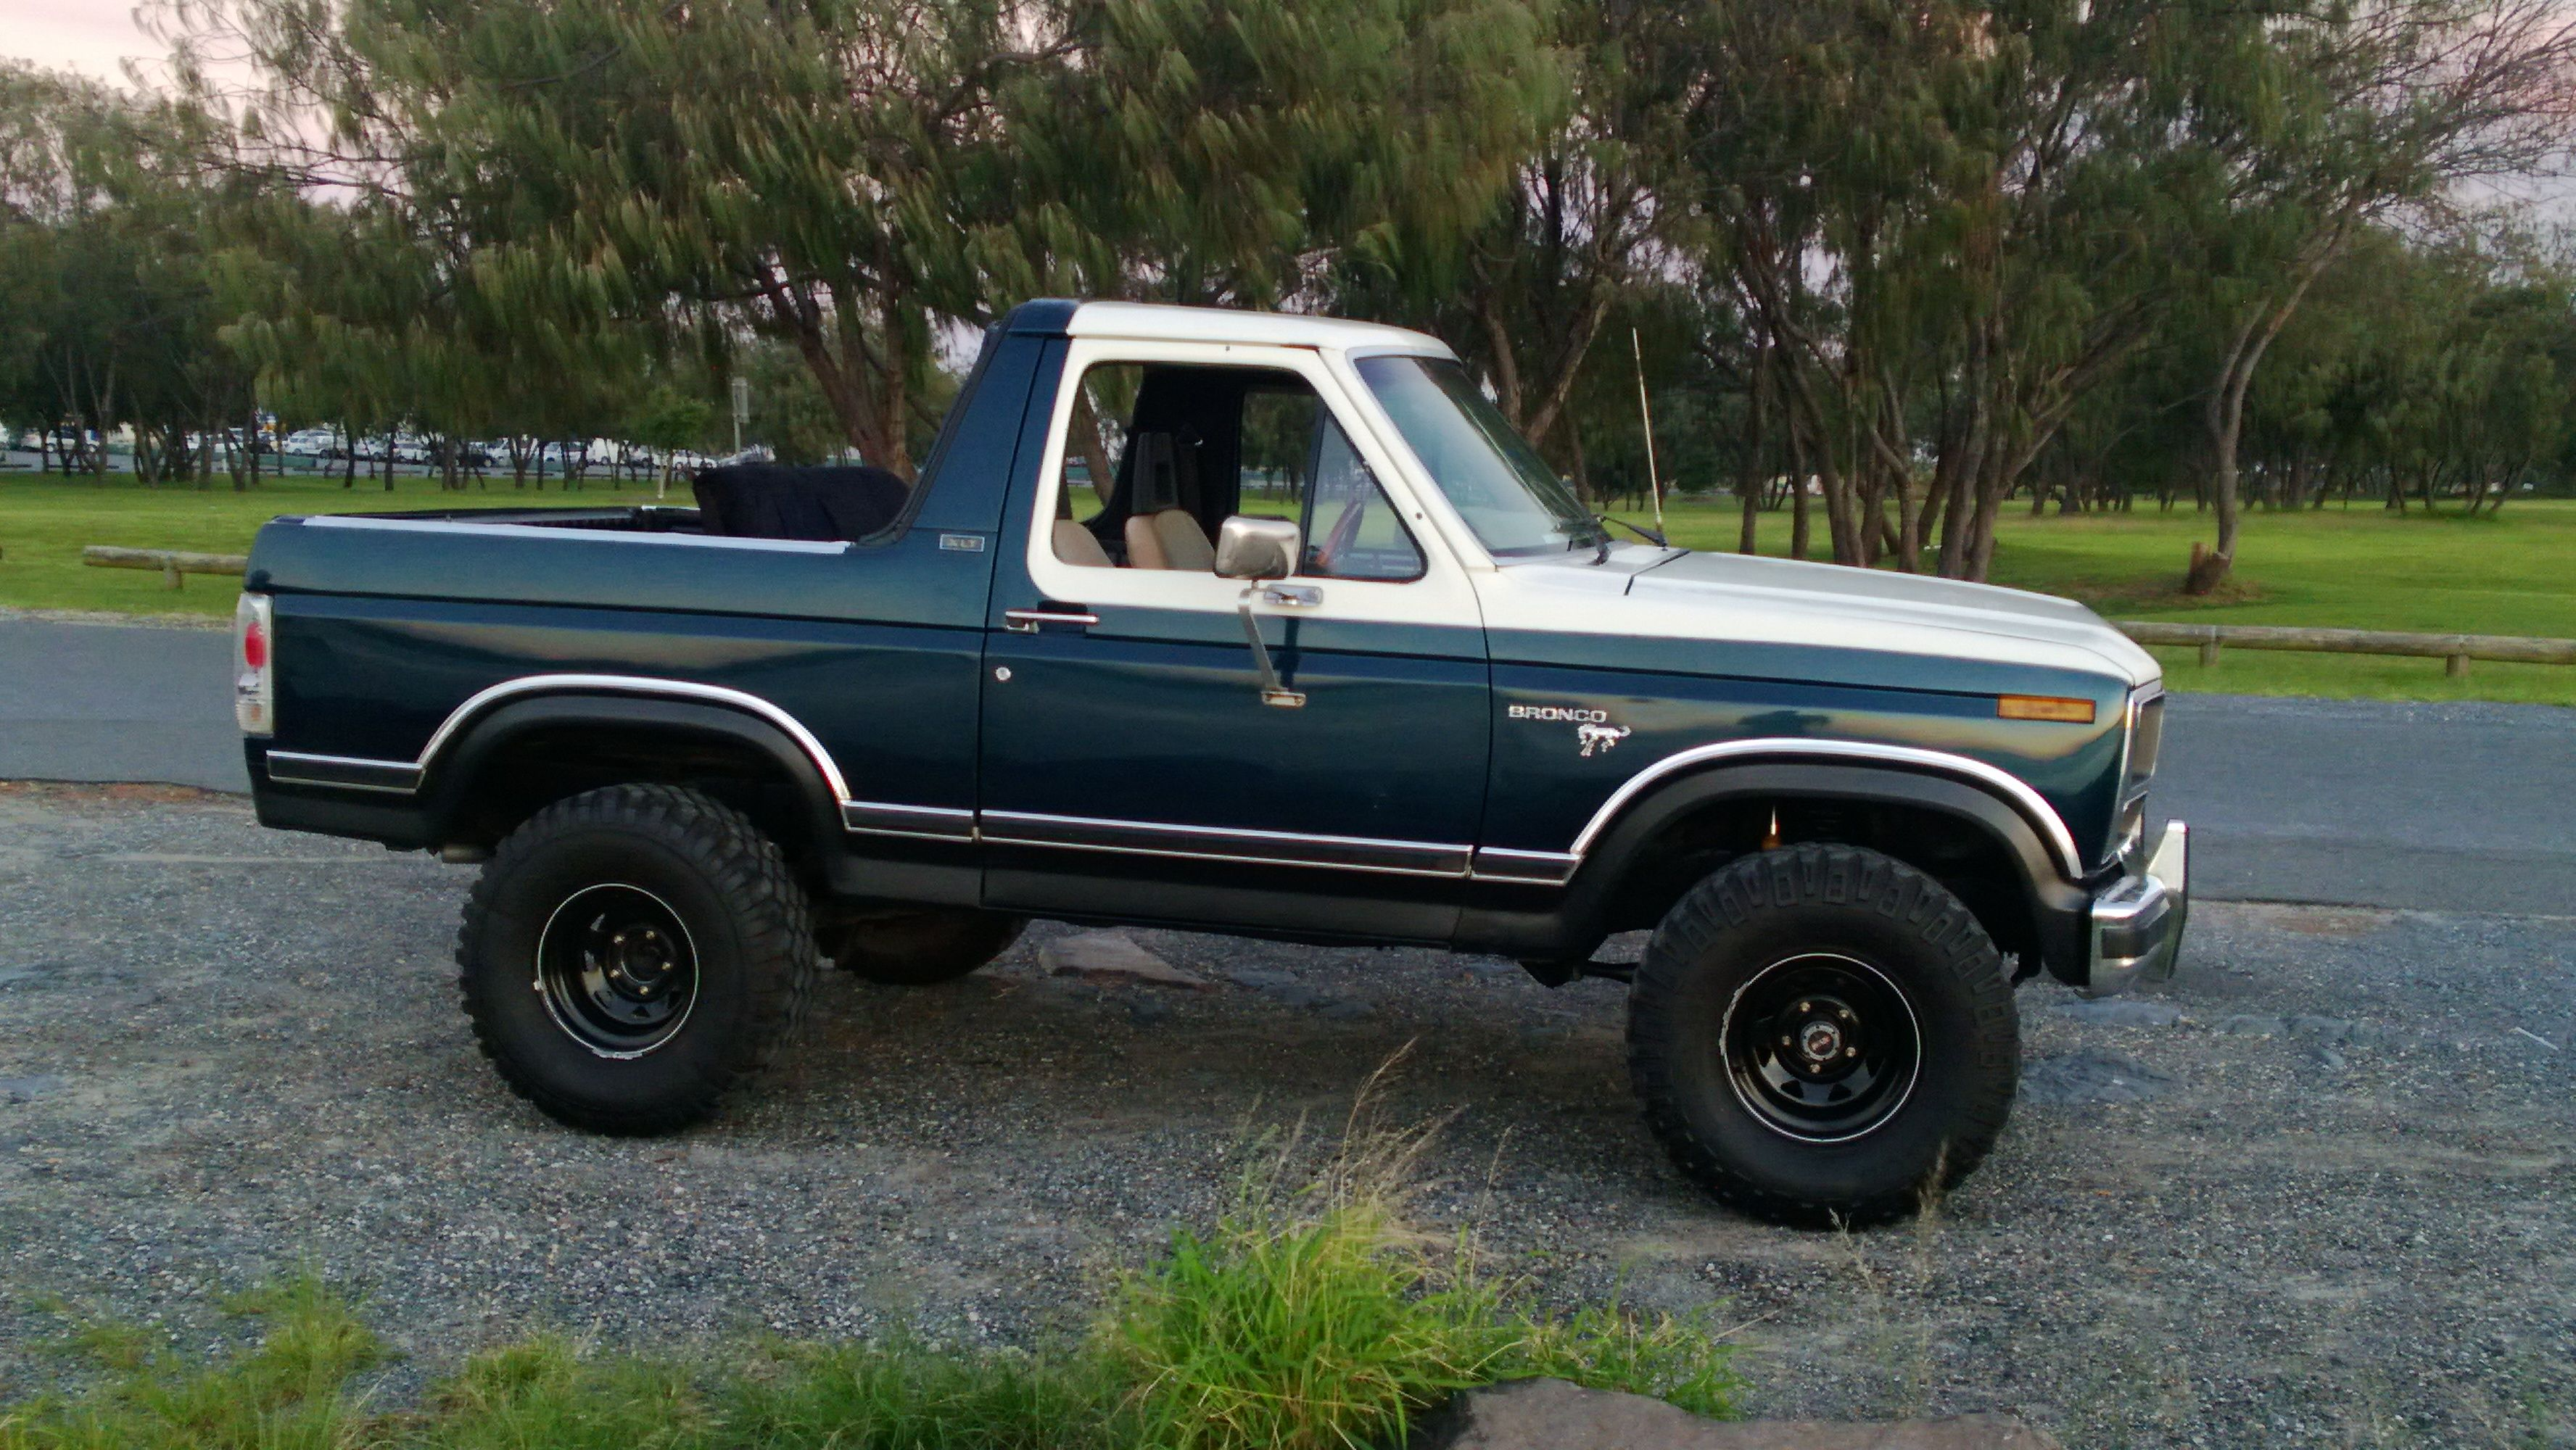 1981 ford bronco the ford bronco is a sport utility vehicle that was produced from